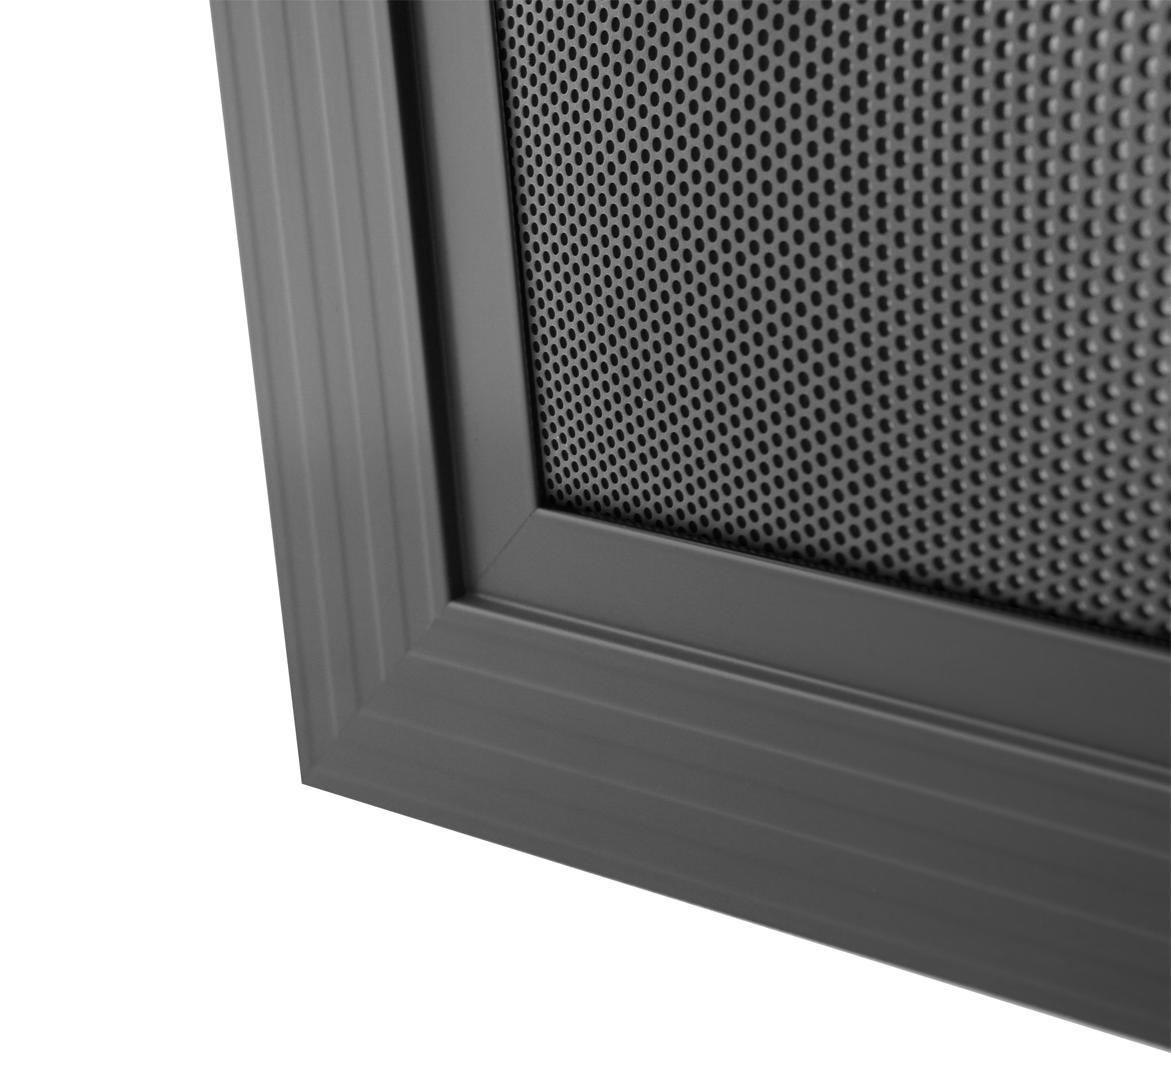 Security Safety Doors And Windows Stainless Steel Mesh